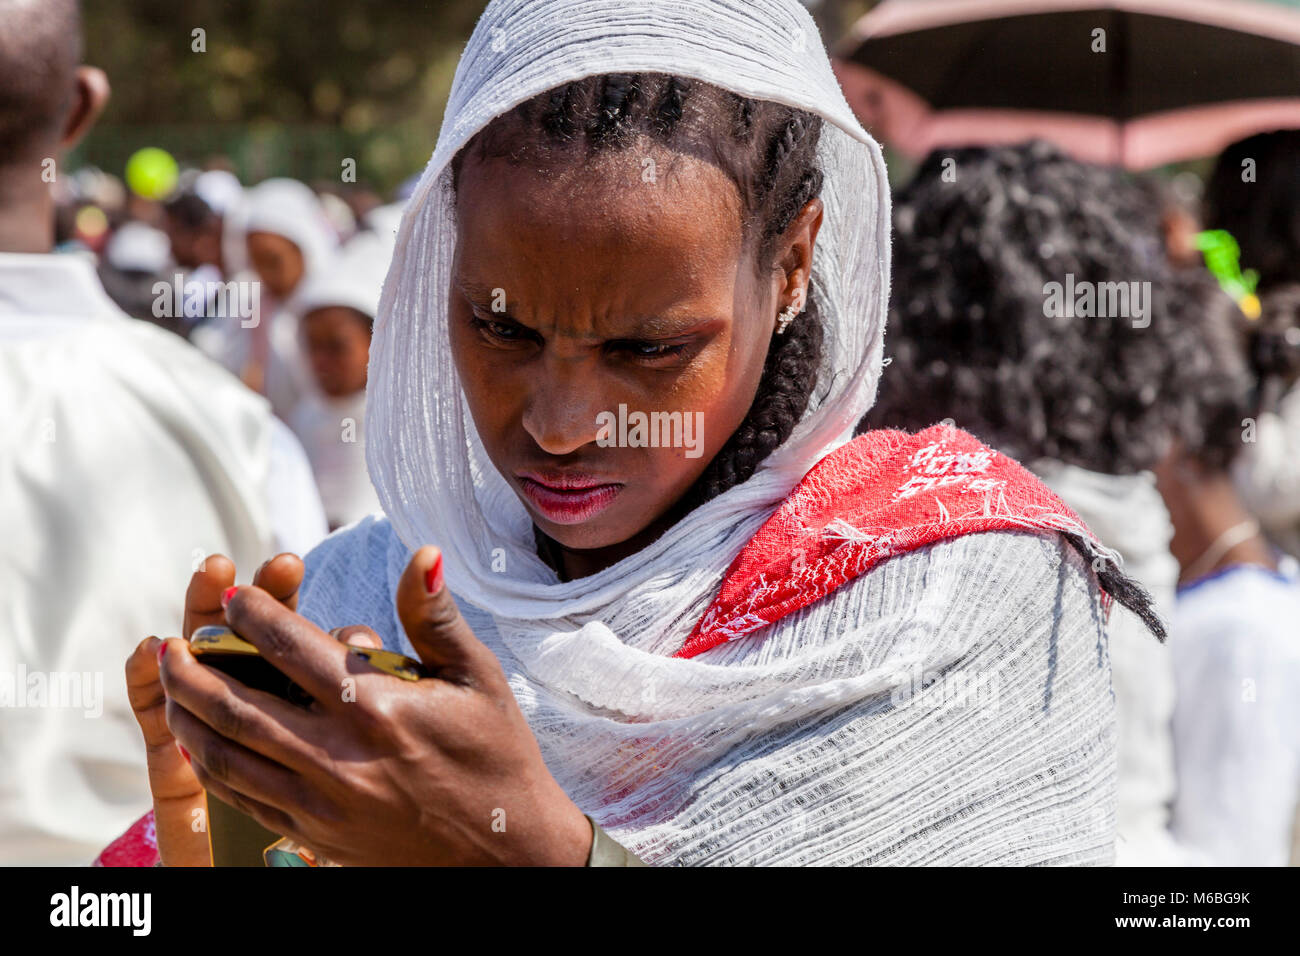 An Ethiopian Woman Looking With Concern At Her Mobile Phone, Addis Ababa, Ethiopia Stock Photo